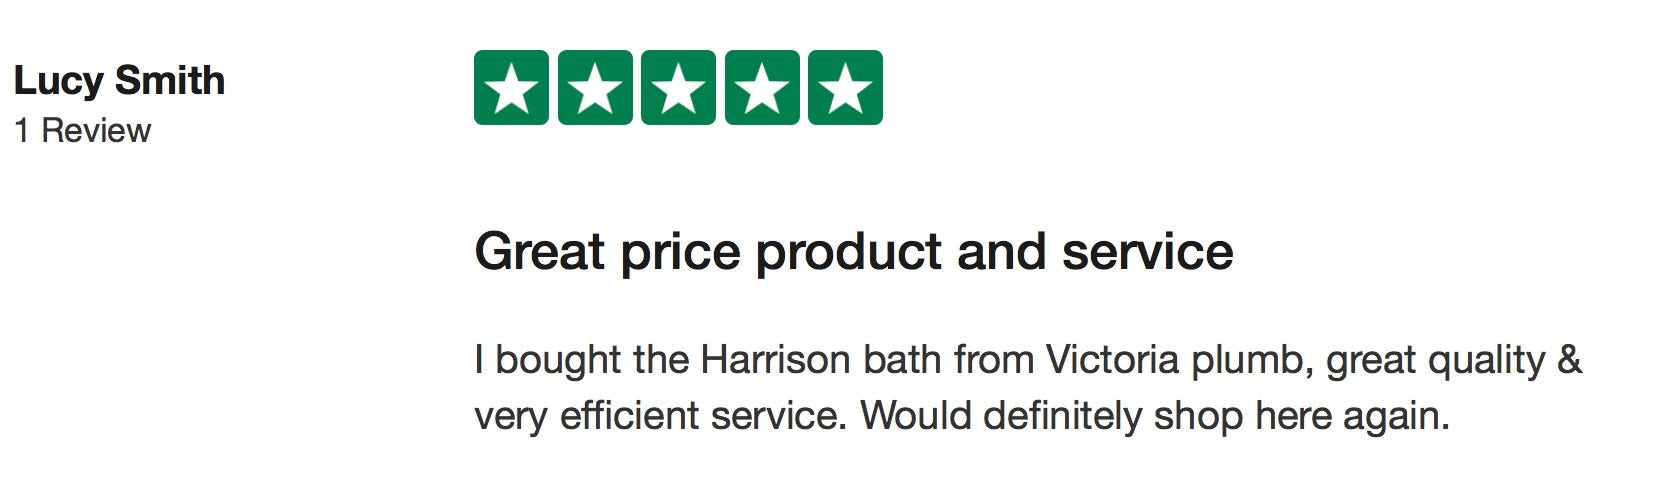 Lucy Smith Trustpilot review